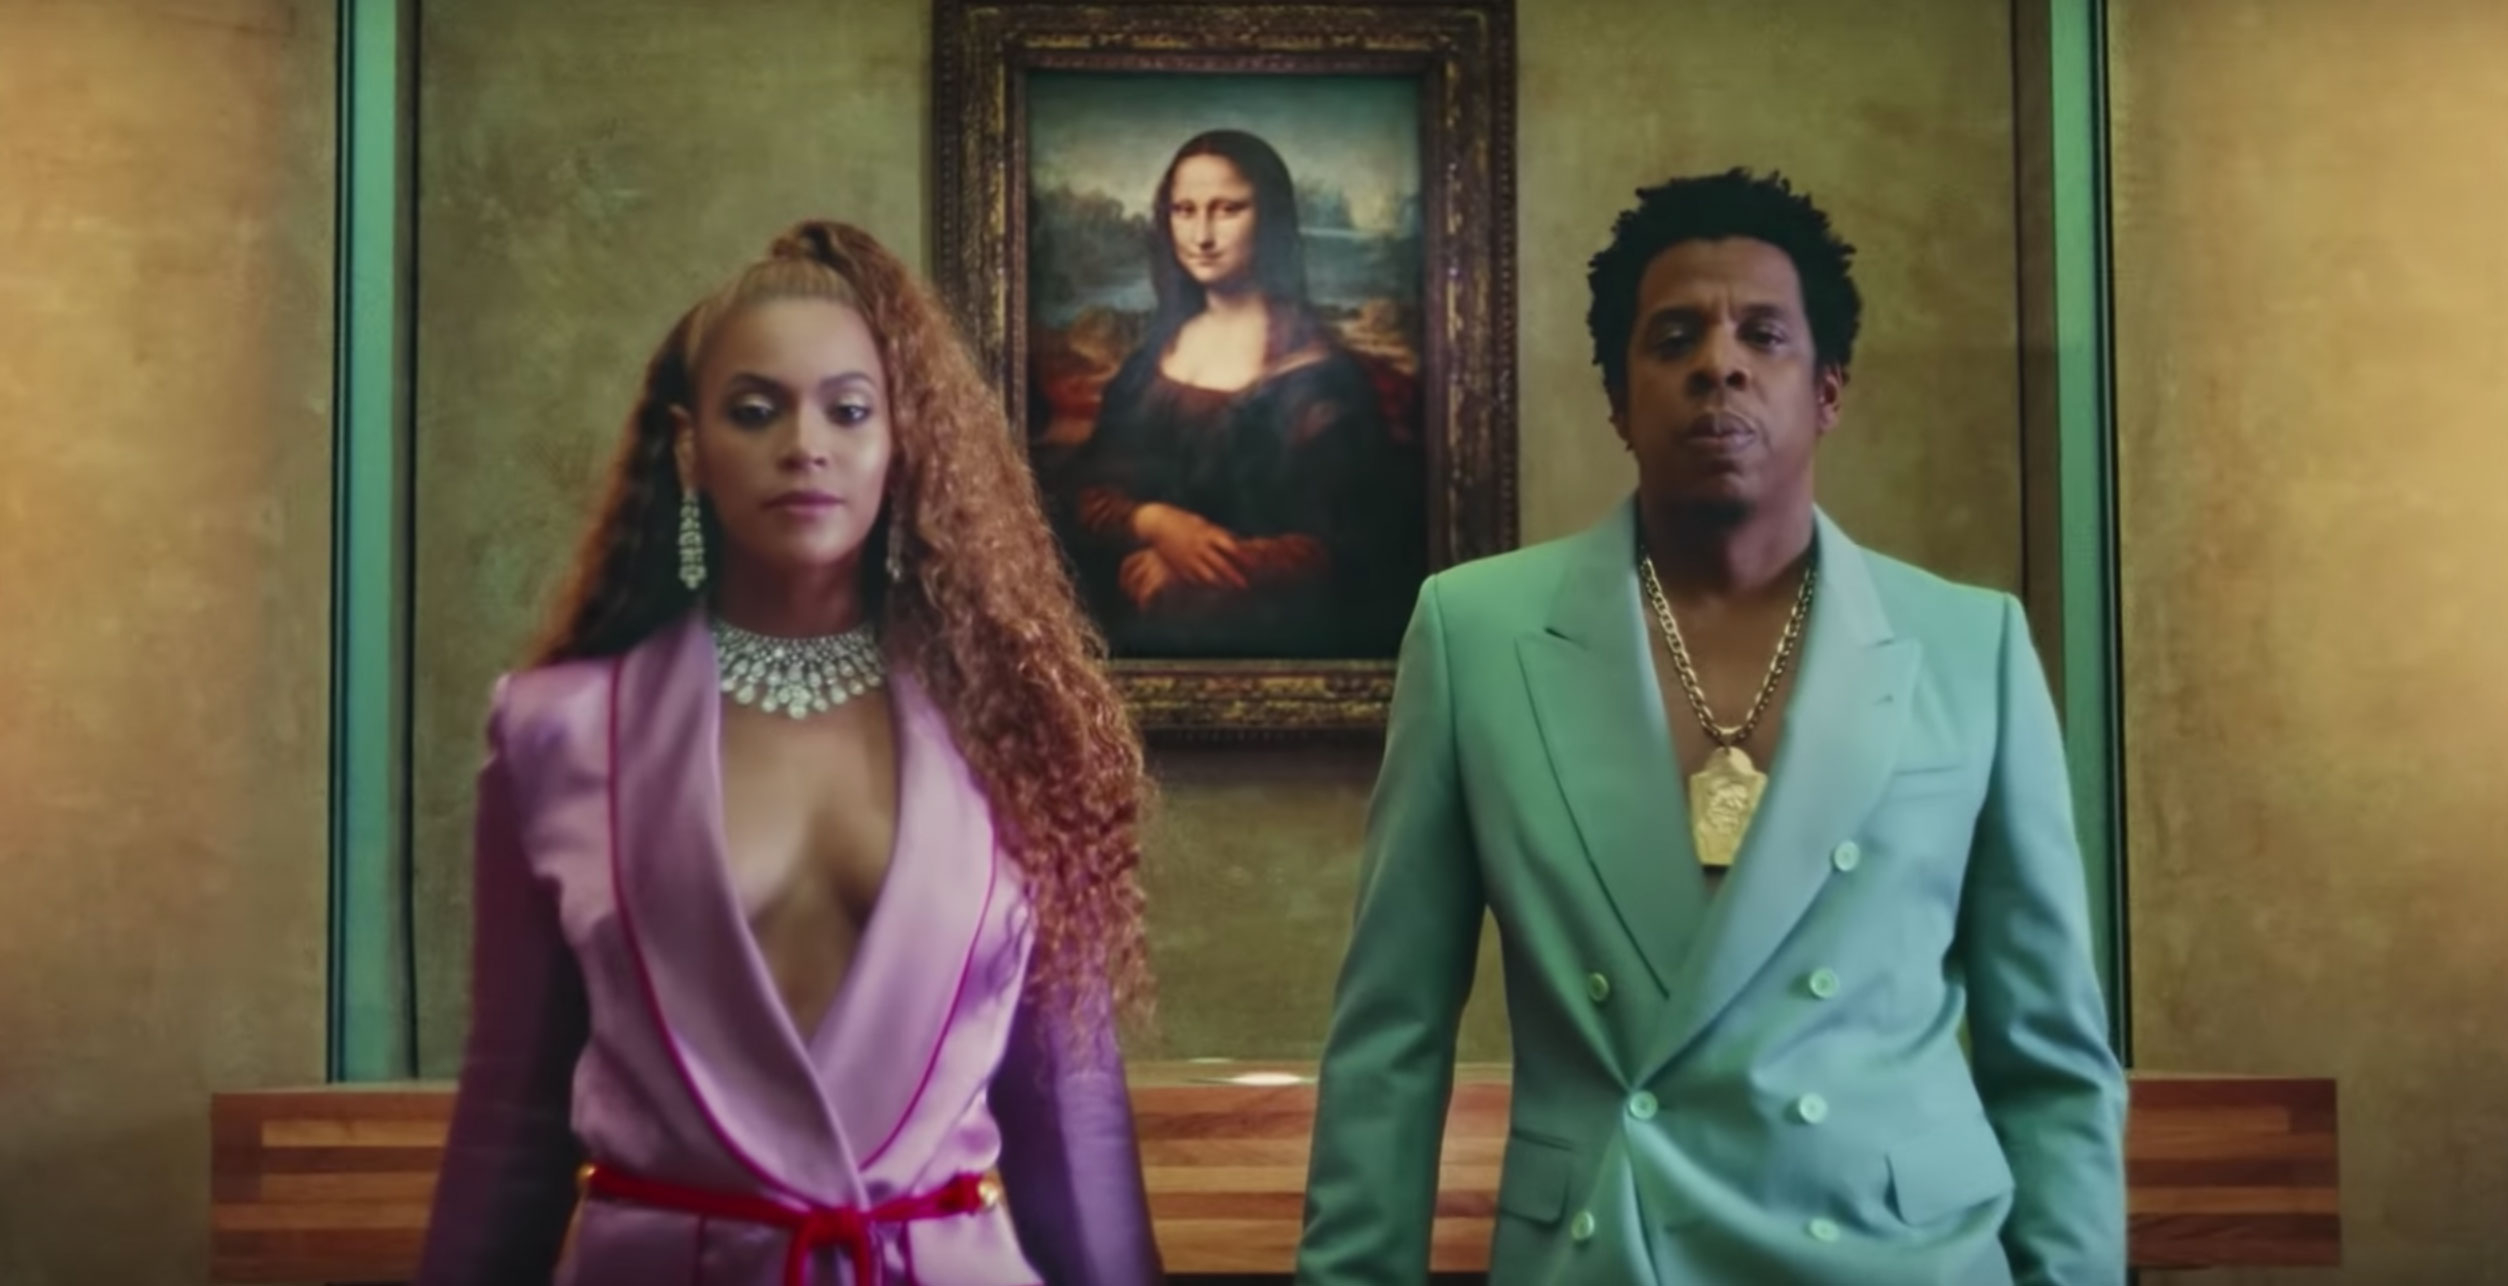 How Beyonce, Jay-Z Defy Western Art Tradition in 'Apeshit